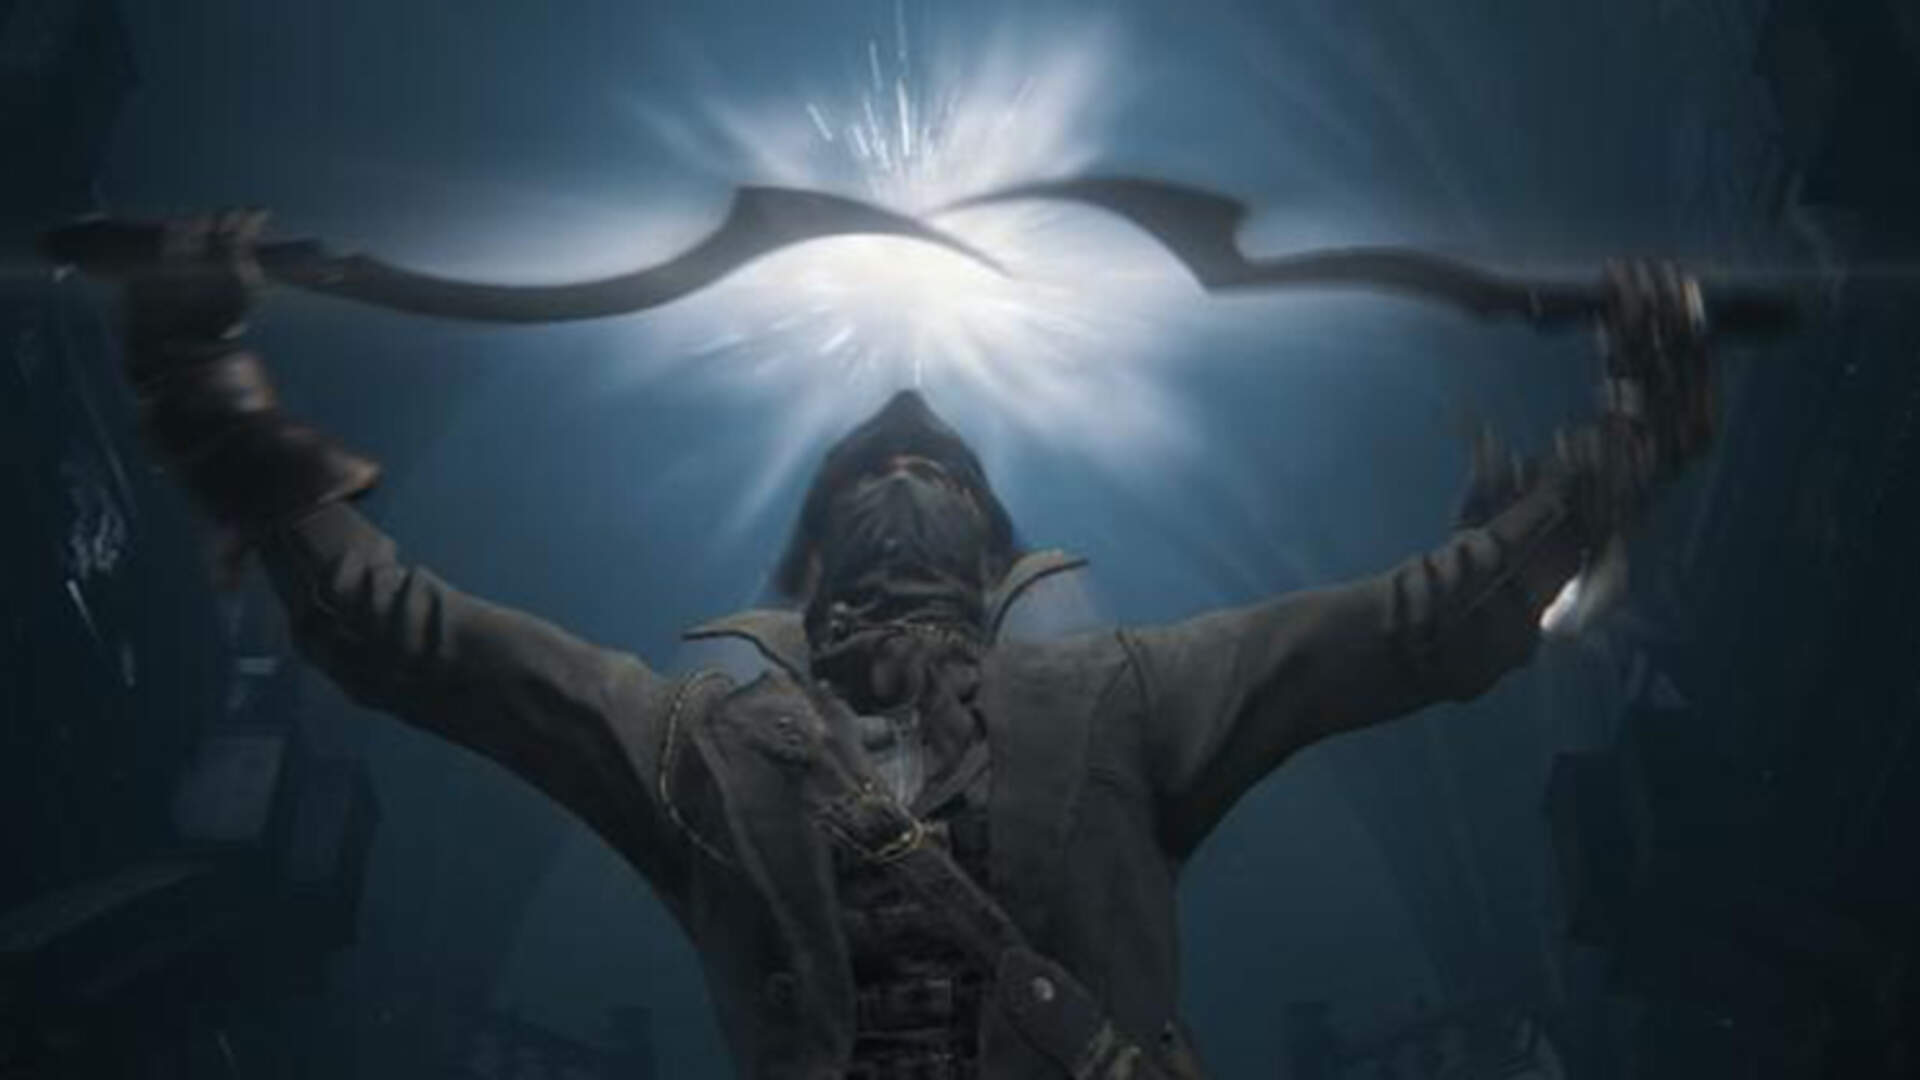 Best Weapons for Strength and Skill Based Characters in Bloodborne